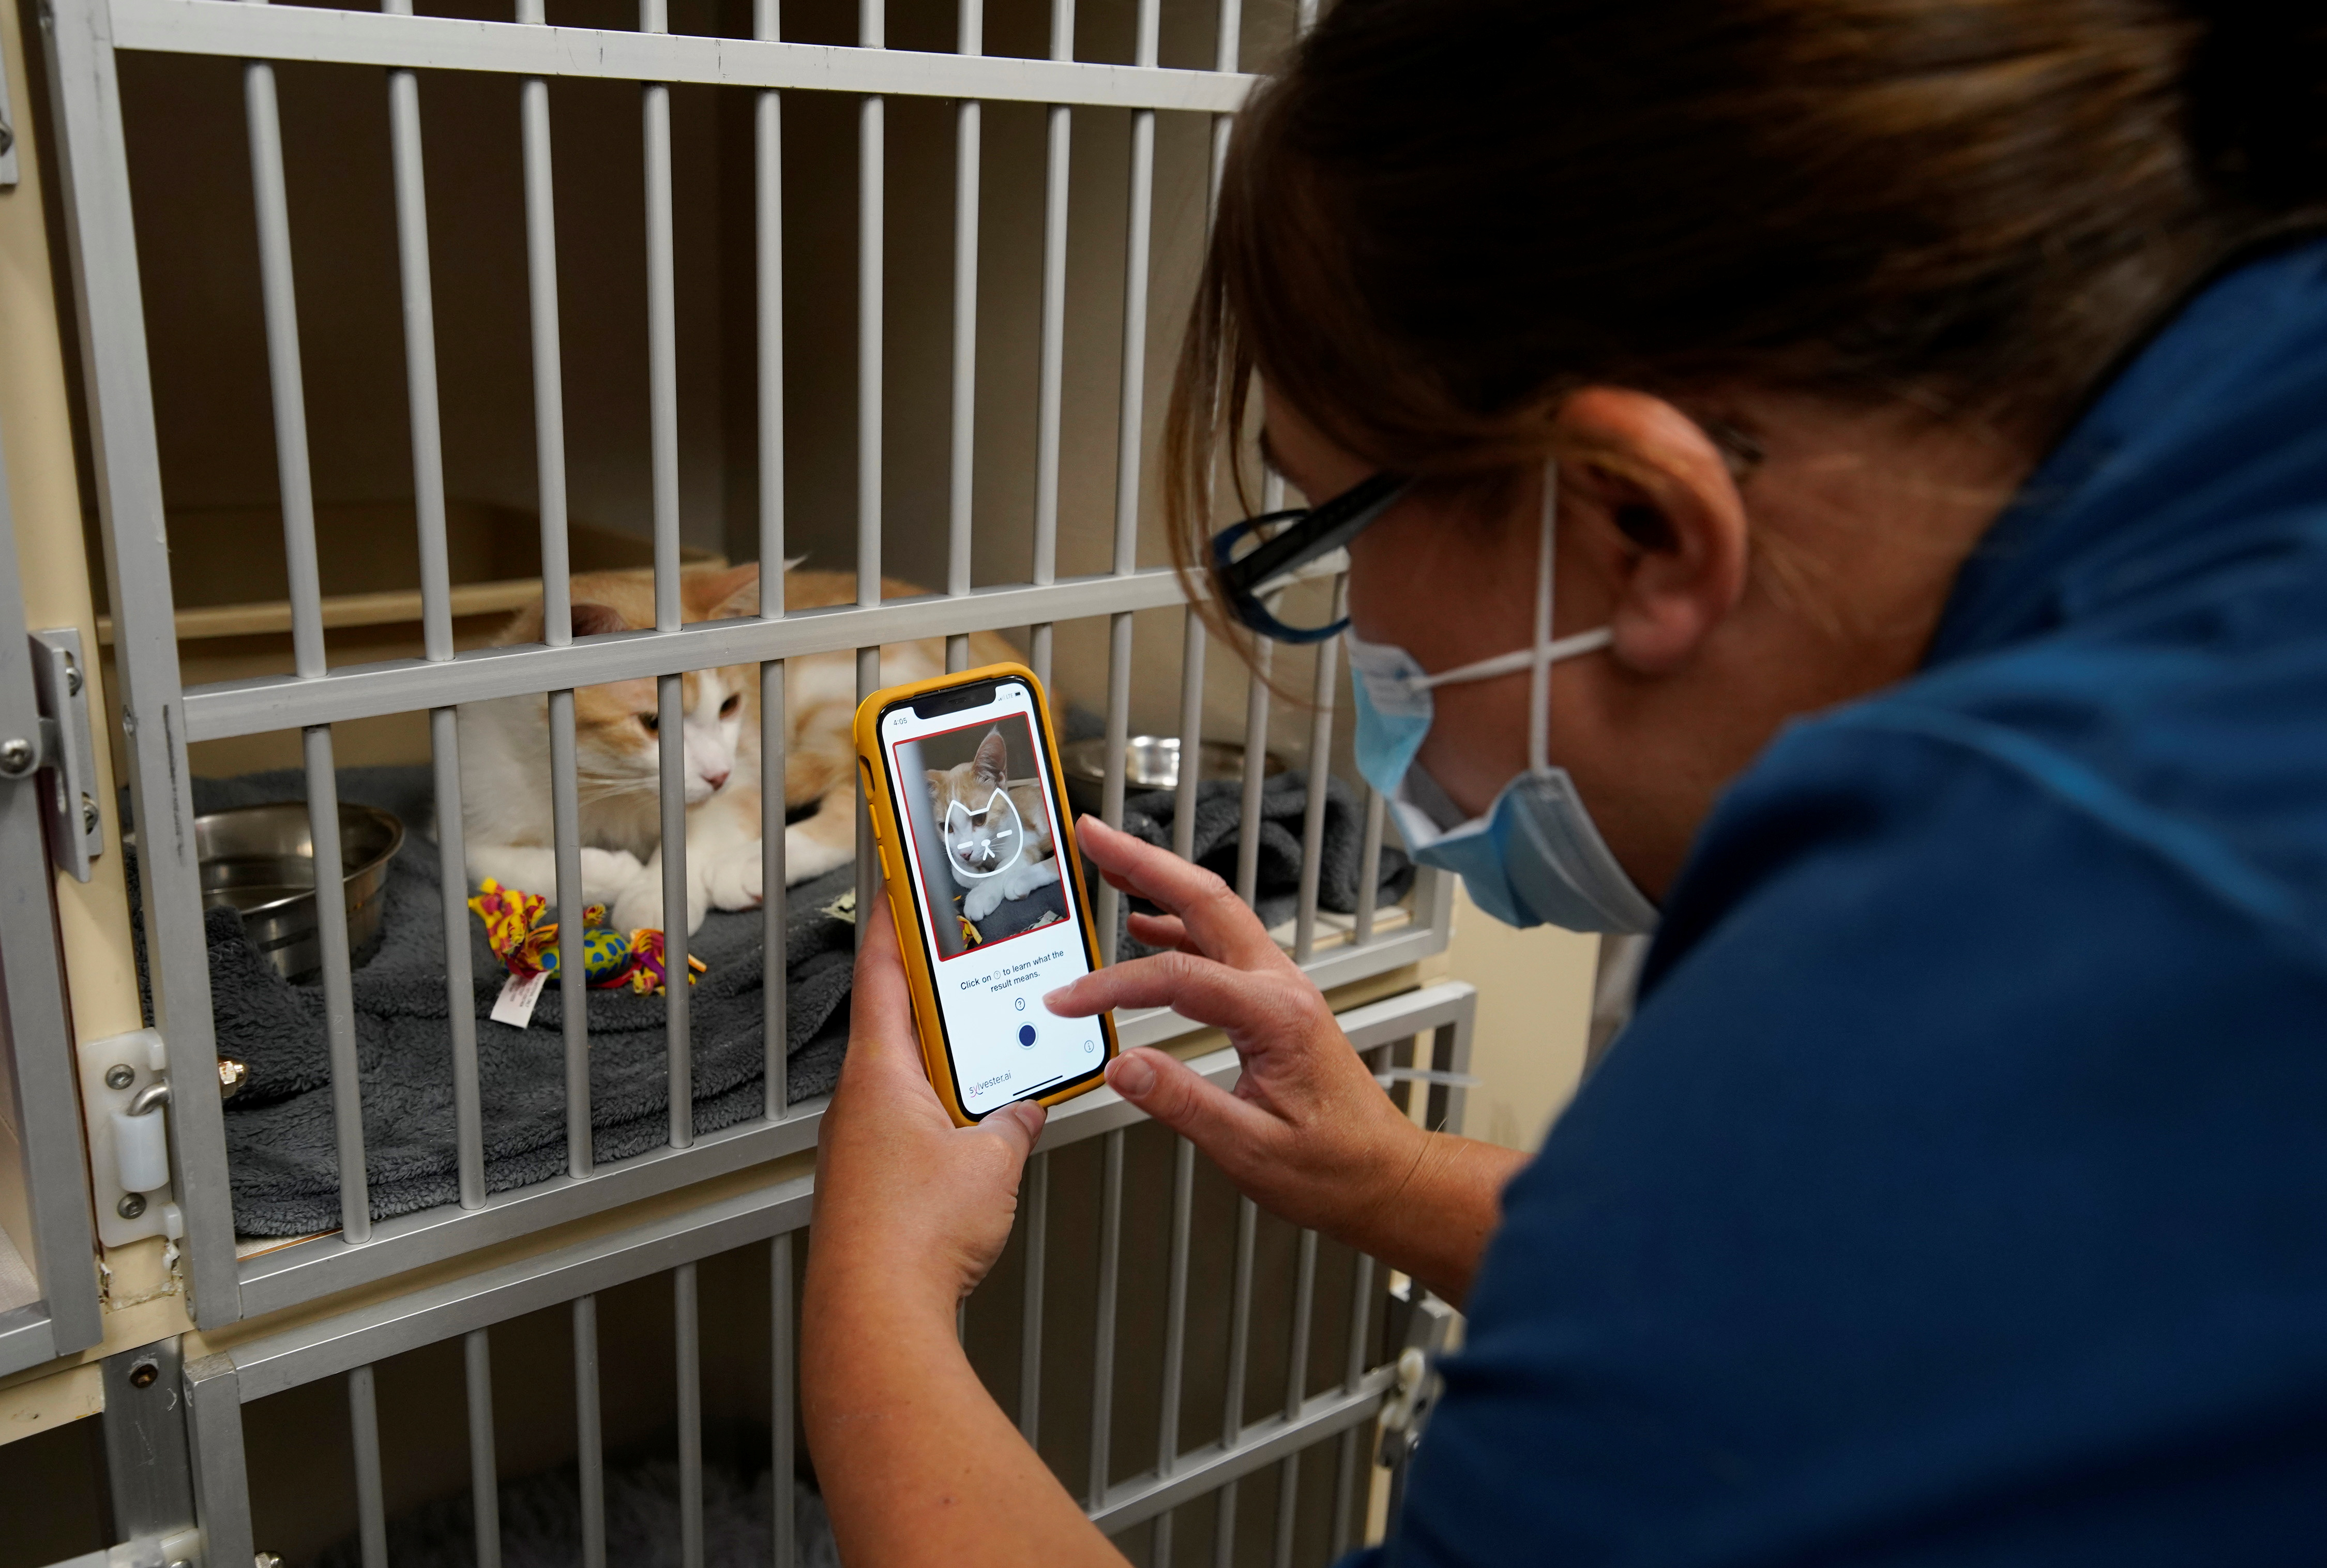 Dr. Liz Ruelle uses a new app called Tably that reads cat's faces and helps her monitor a cat's health at the Wild Rose Cat clinic in Calgary, Alberta, Canada, July 14, 2021. REUTERS/Todd Korol